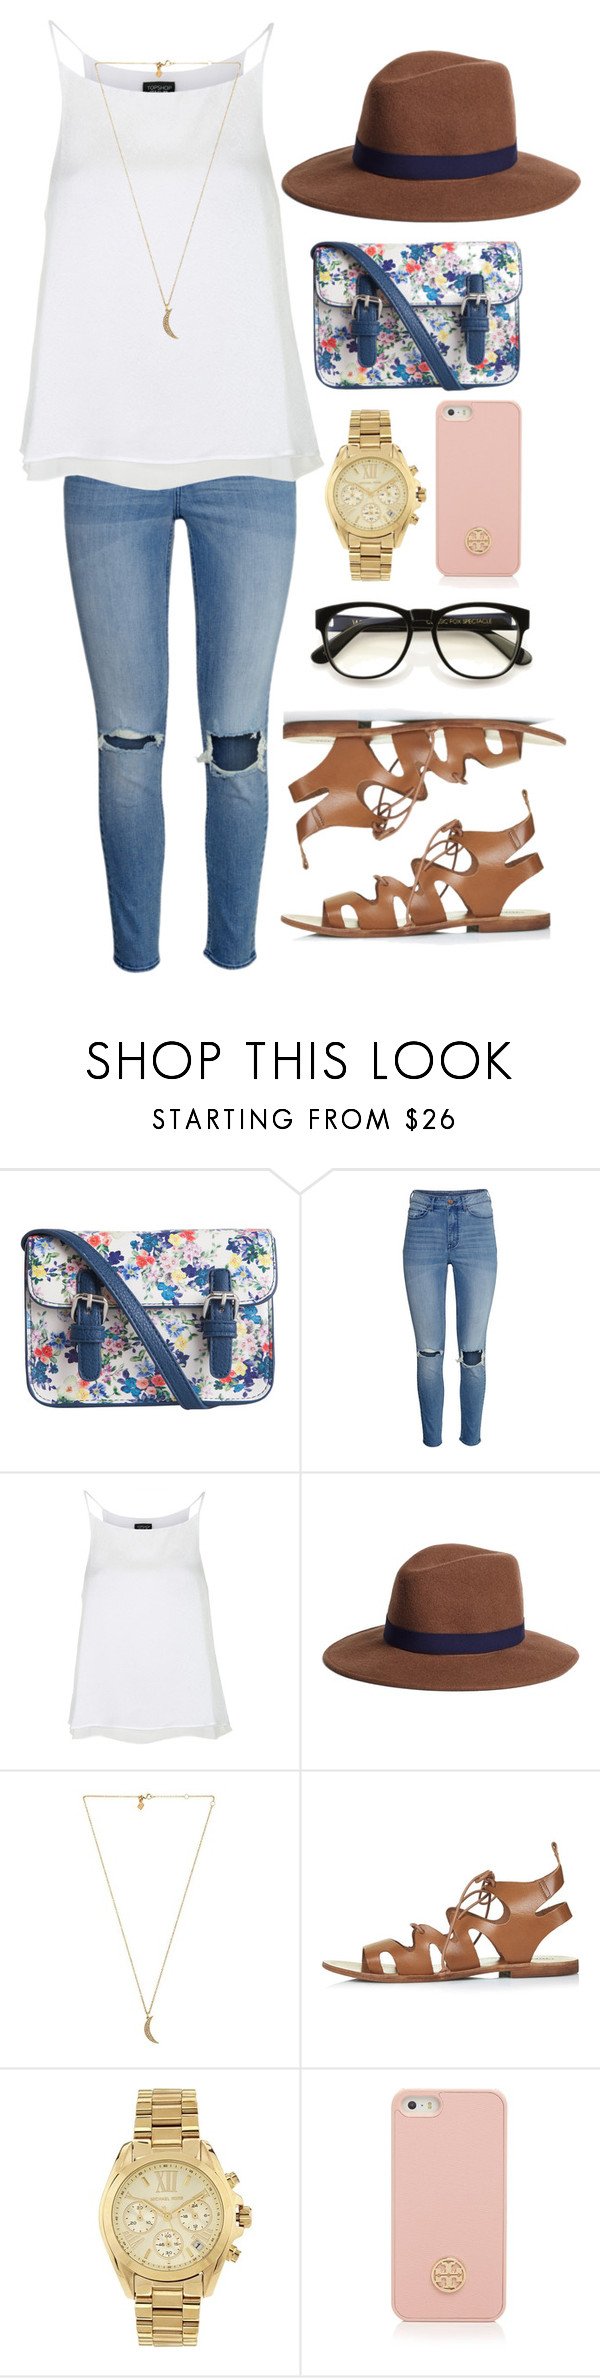 """""""Untitled #75"""" by sydneyalexandra ❤ liked on Polyvore featuring Pieces, H&M, Topshop, Brooks Brothers, Rebecca Minkoff, Michael Kors, Tory Burch and Wildfox"""